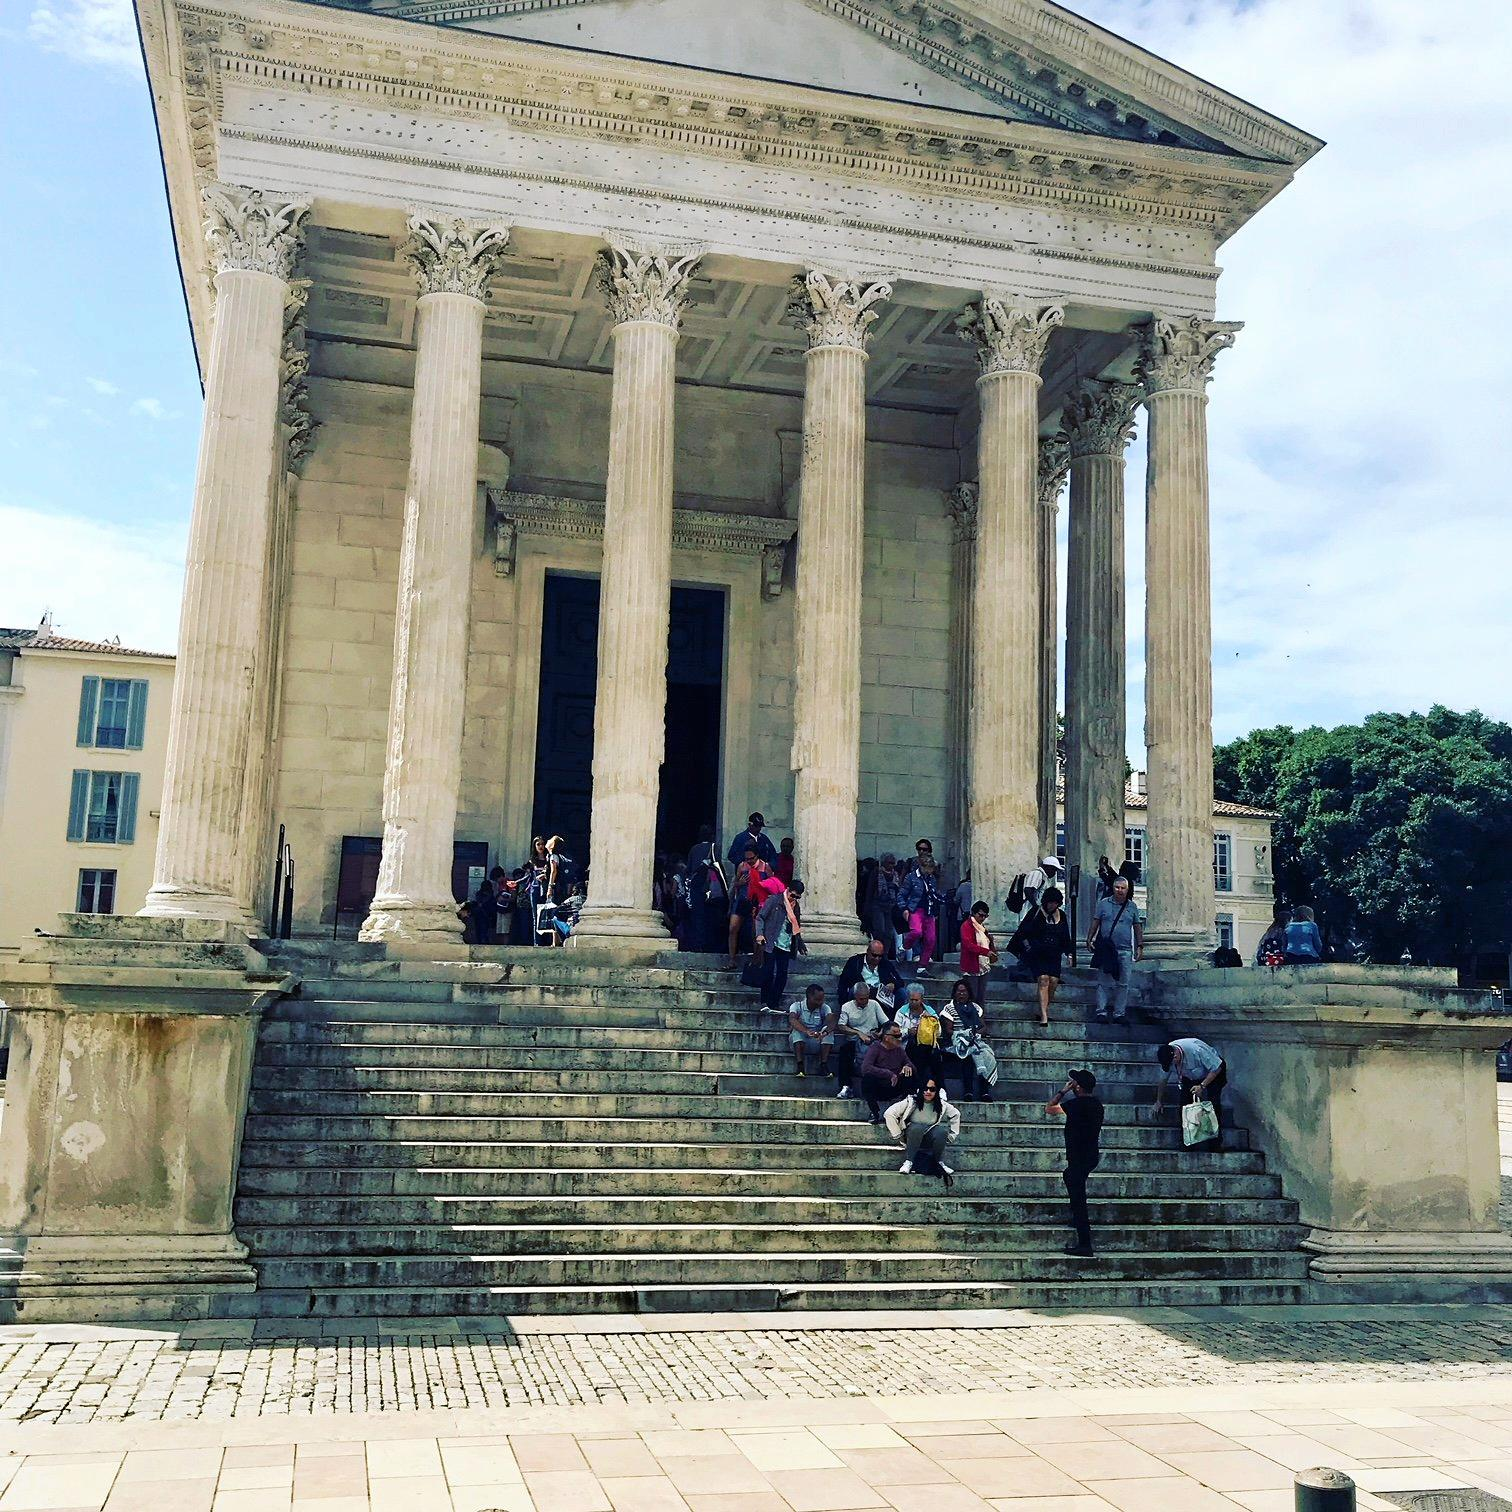 The Square House temple, Nimes.